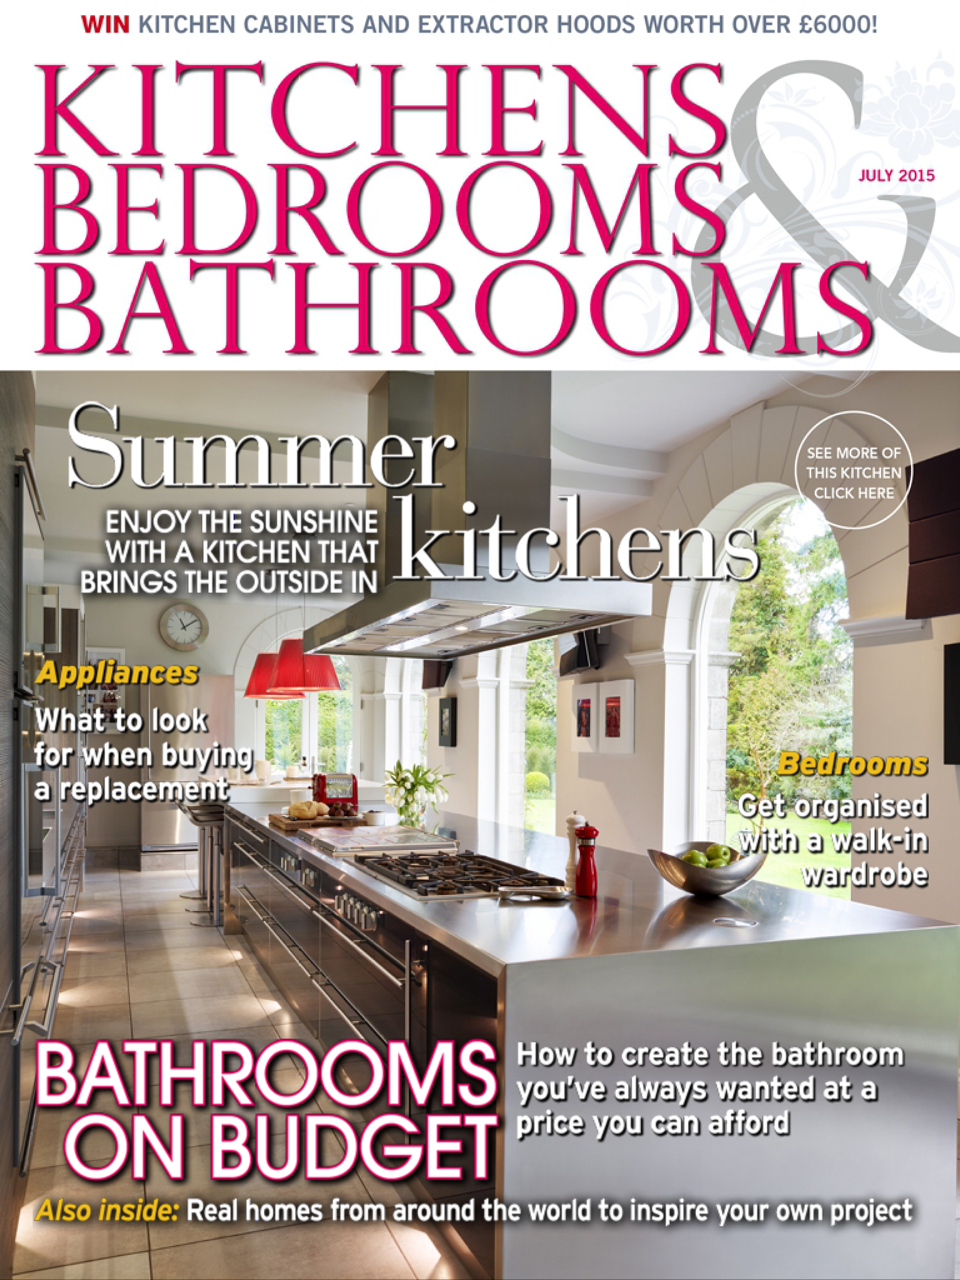 Kitchens, Bedrooms and Bathrooms